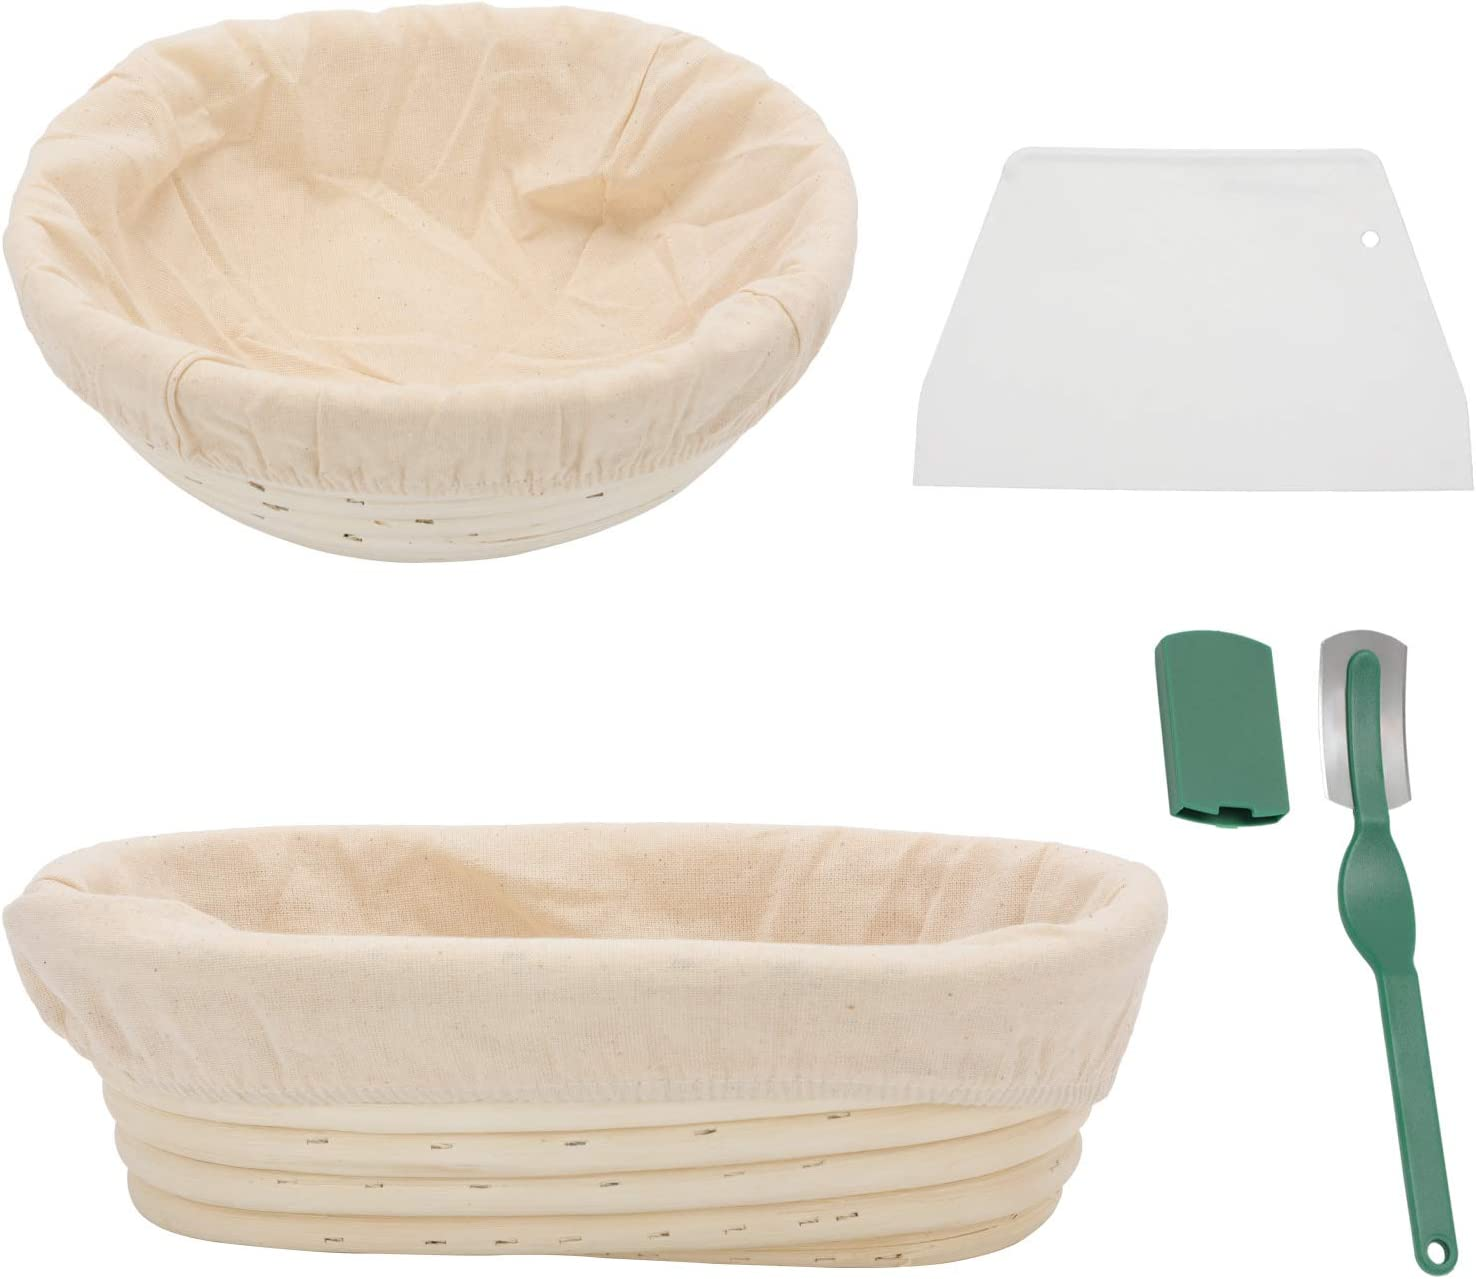 MorNon Bread Proofing basket Set of 2, 9 Inch Oval & 10 Inch Round Proofing Bowls with Dough Scraper, Bread Lame, Liners for Baking Proofing Home Sourdough Bakers Baking